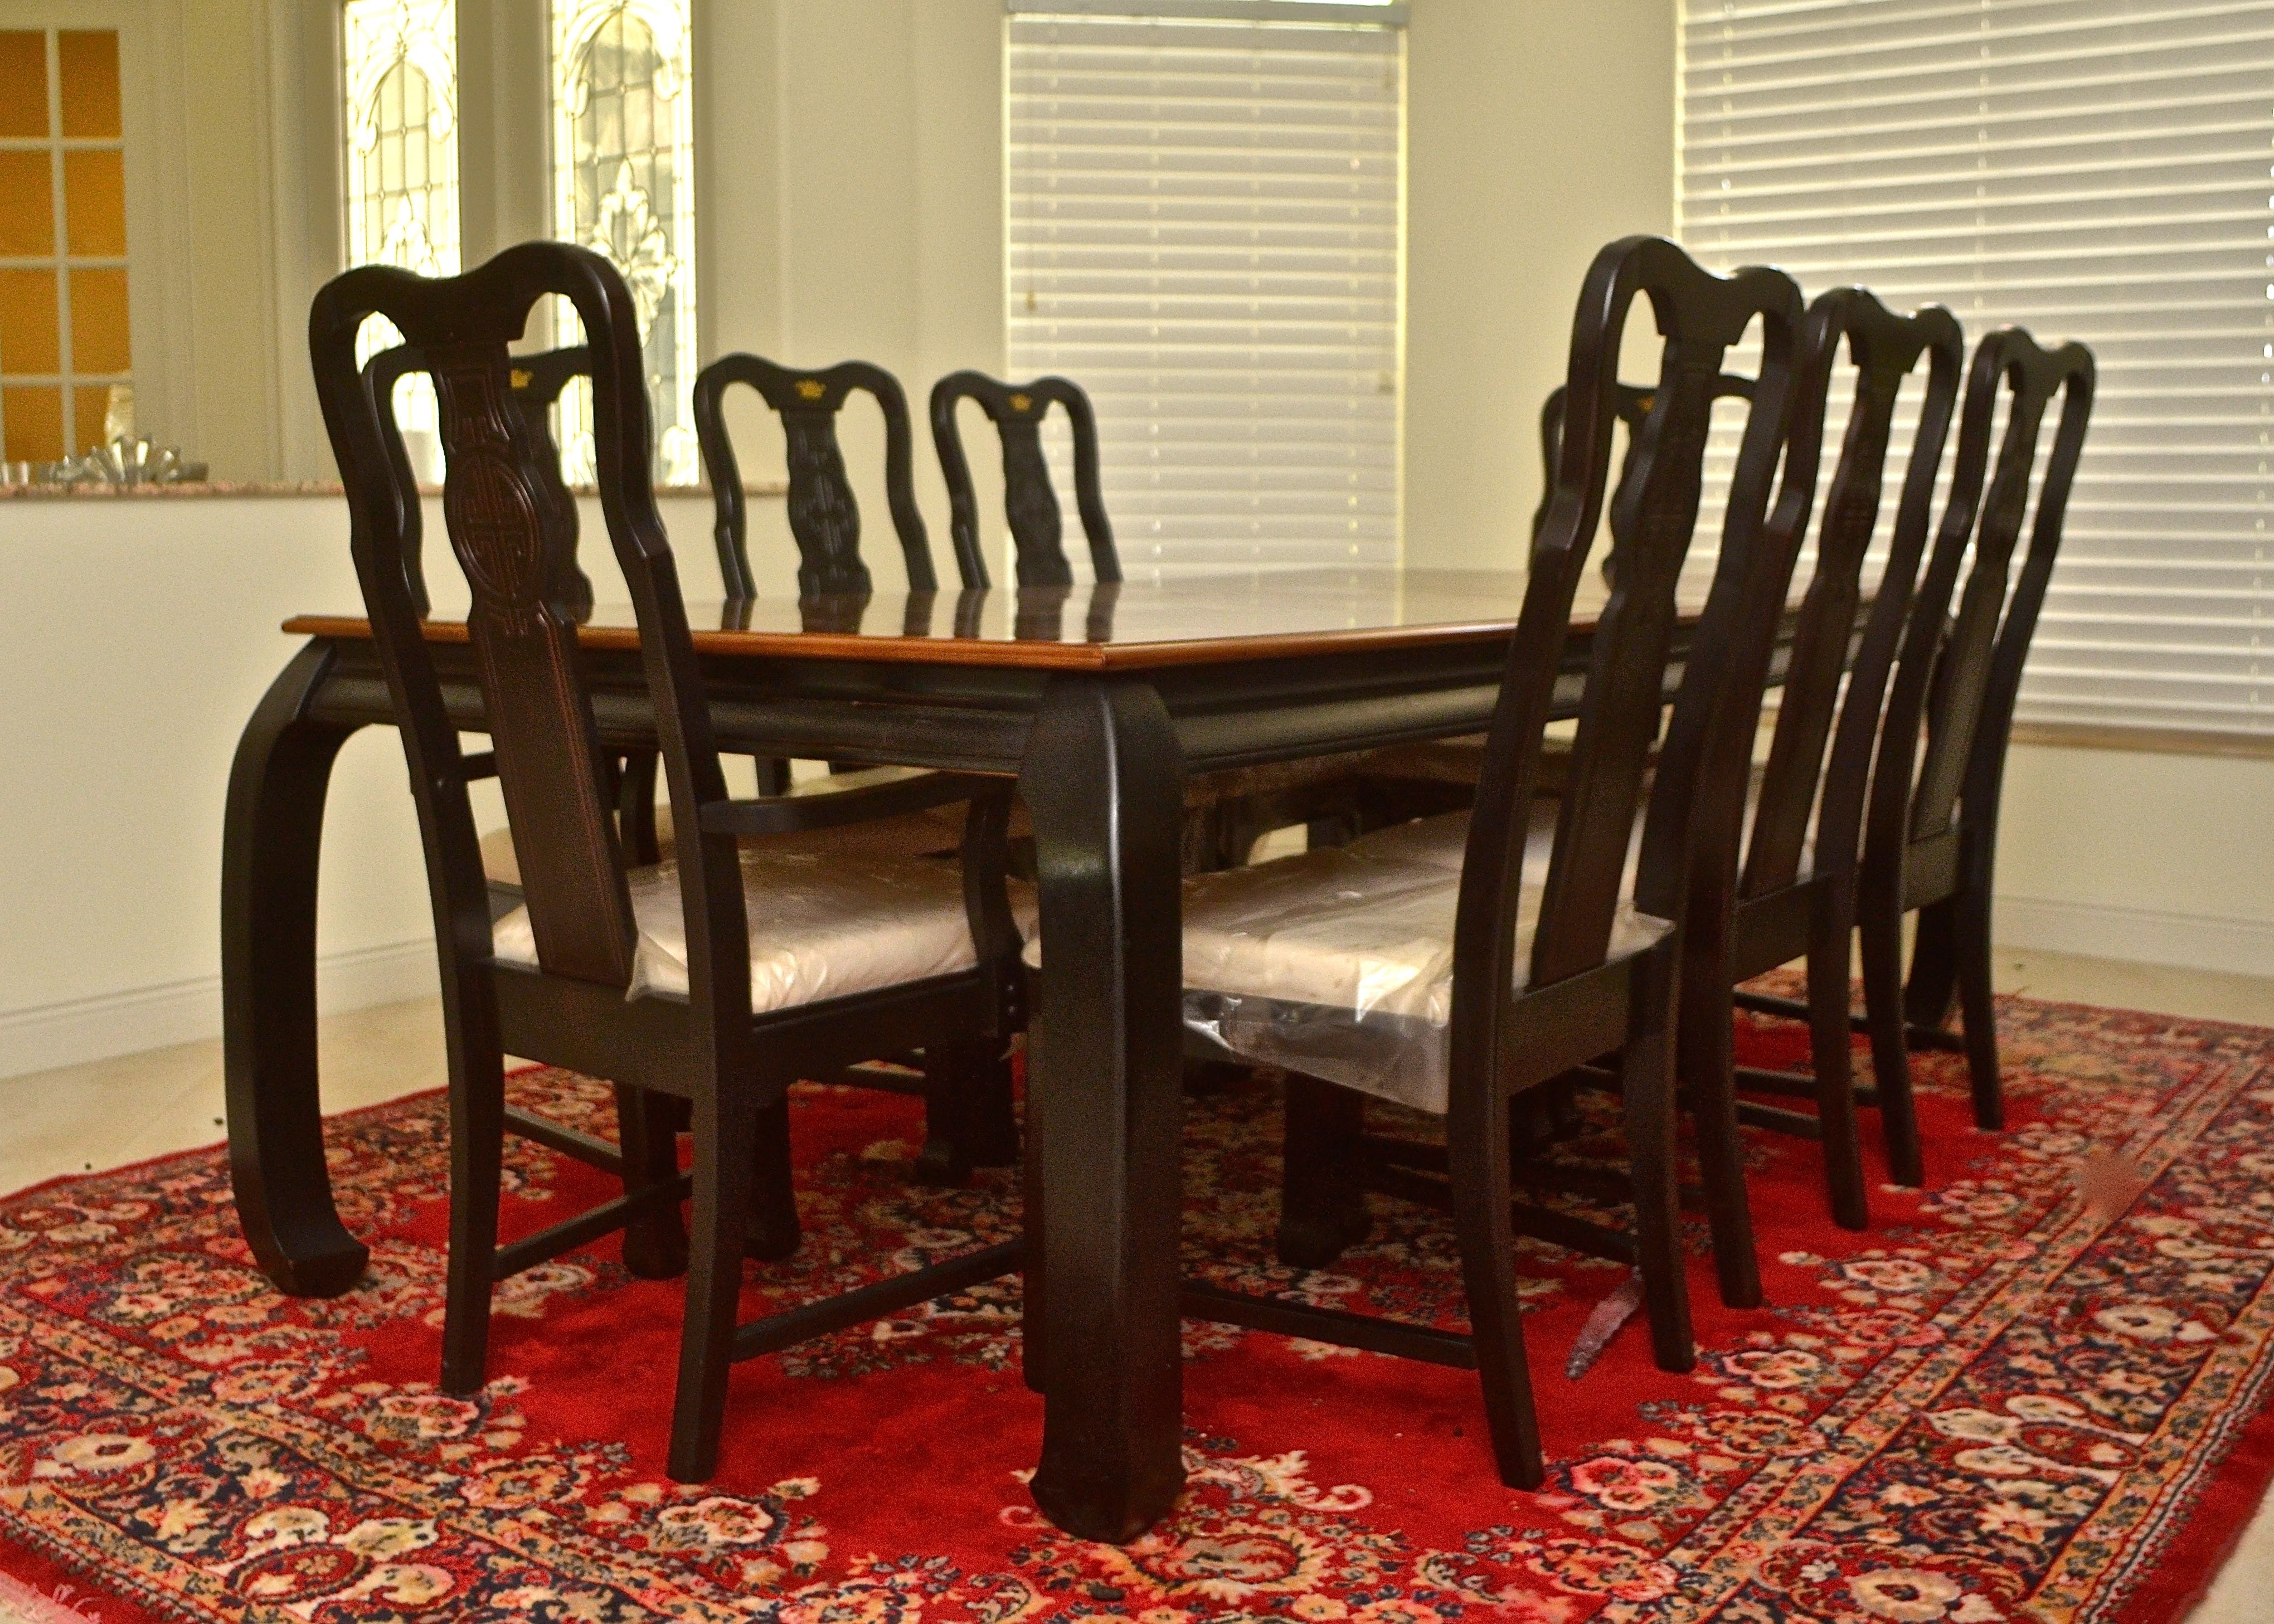 Asian Influened Dining Room Table with Eight Chairs EBTH : SDG9300jpgixlibrb 11 from www.ebth.com size 1400 x 1000 jpeg 329kB